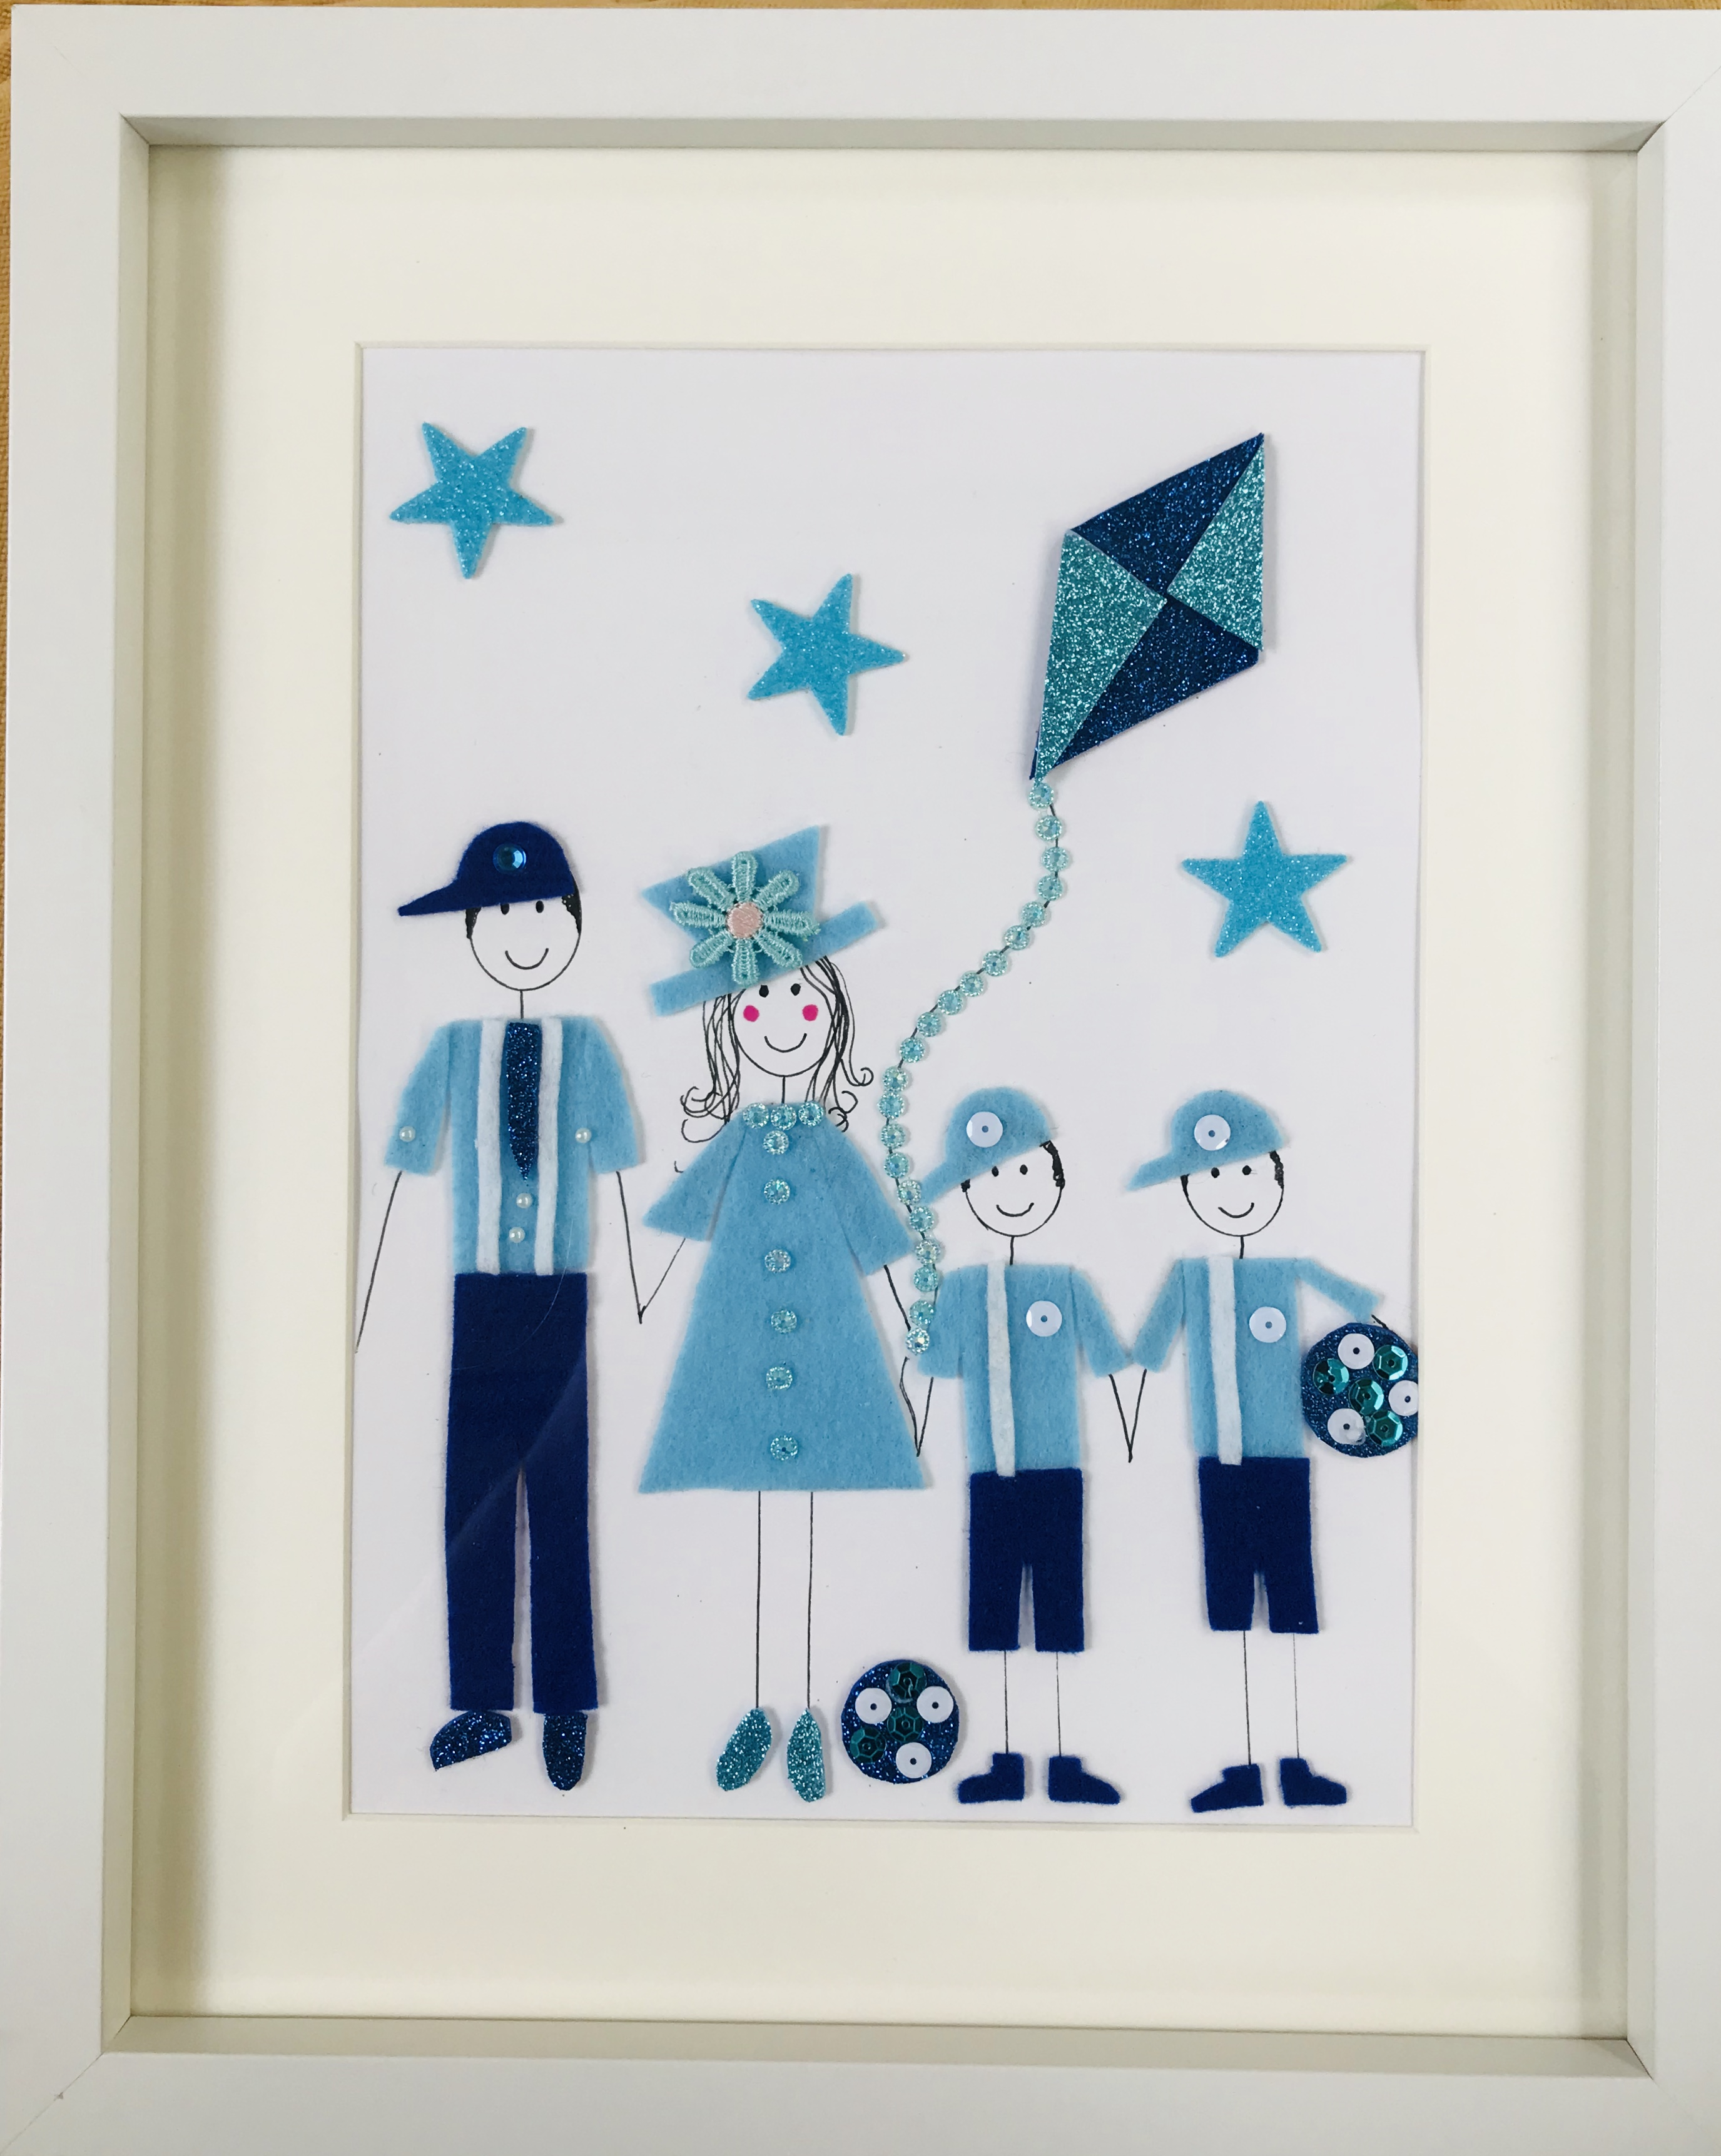 Family Picture of 4 with kite personlised framed wall art